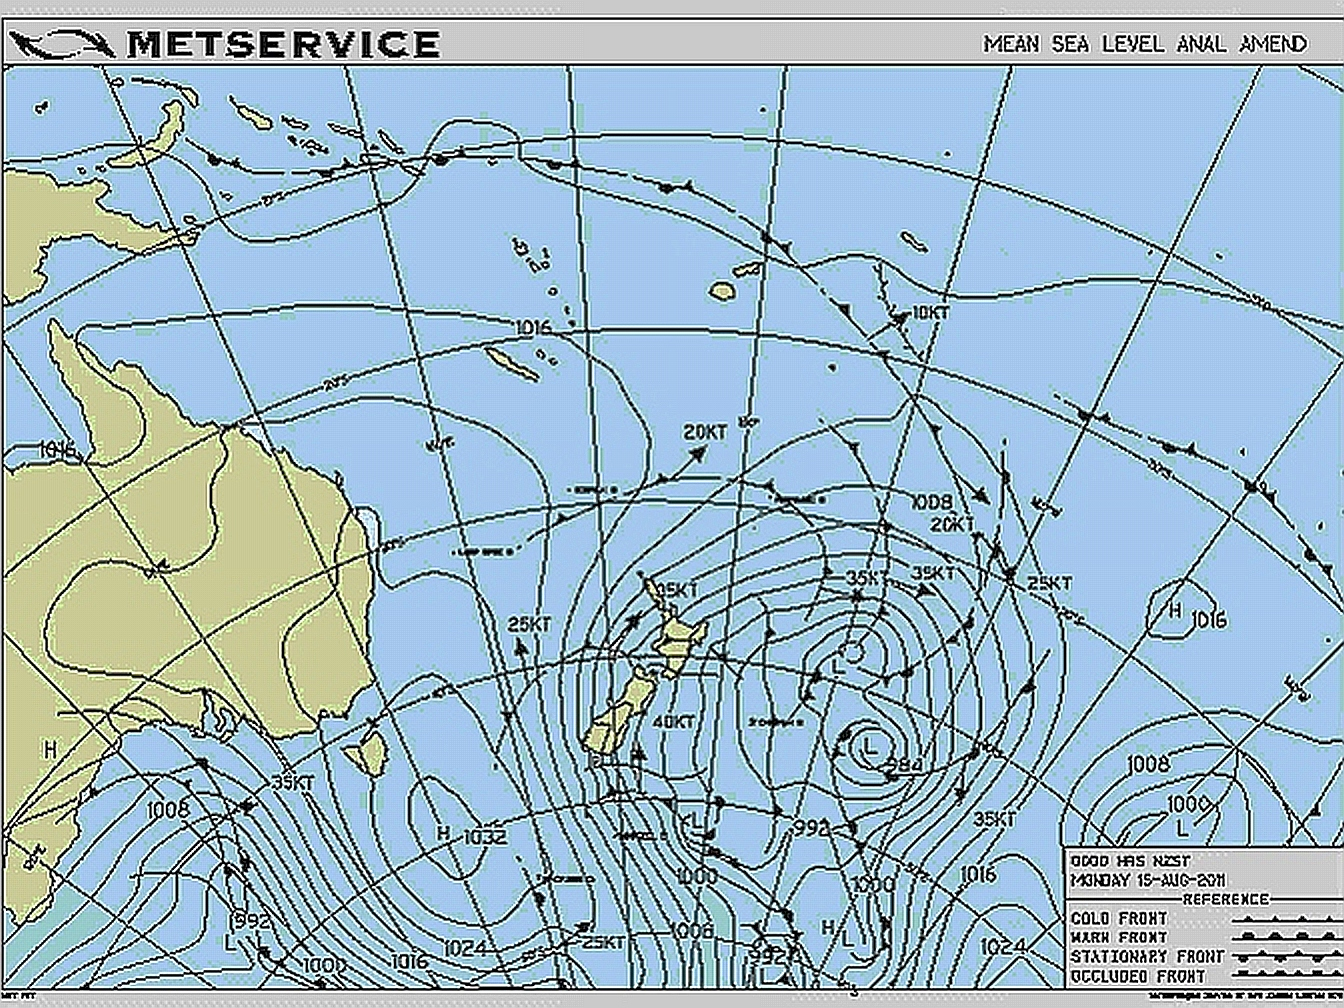 New Zealand Weather Map.2011 The Weather In Review Metservice Blog